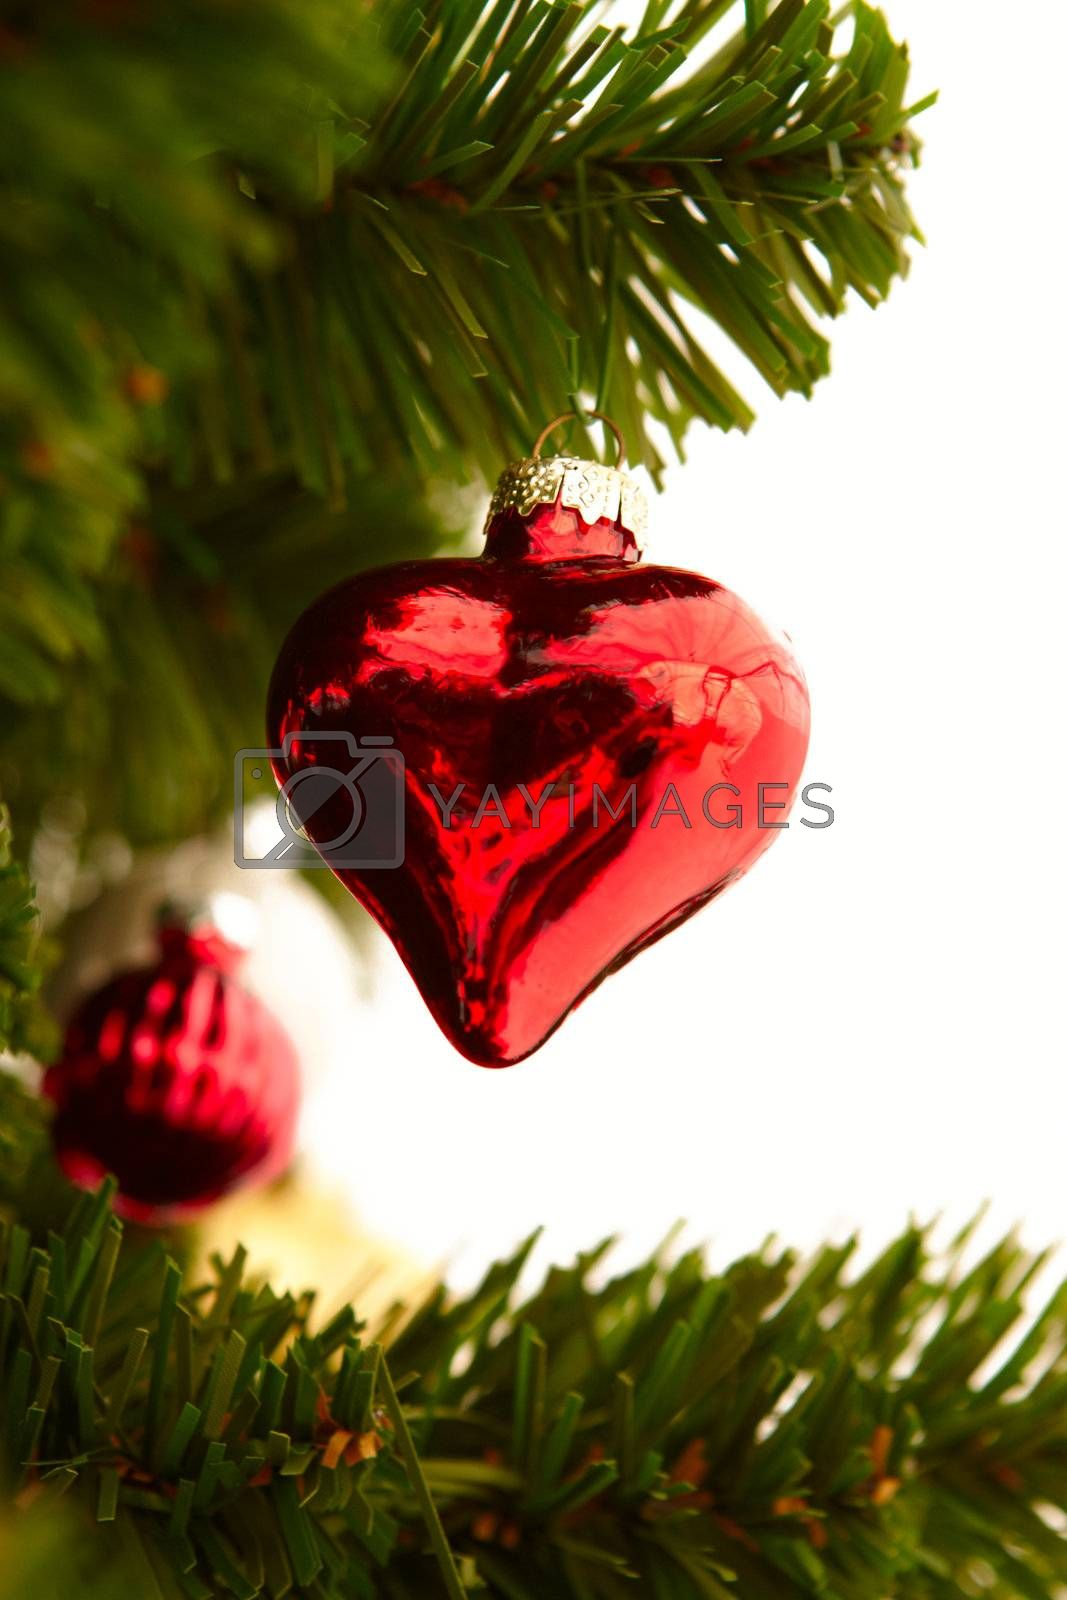 Royalty free image of Christmas - Red heart decoration on white by FreedomImage